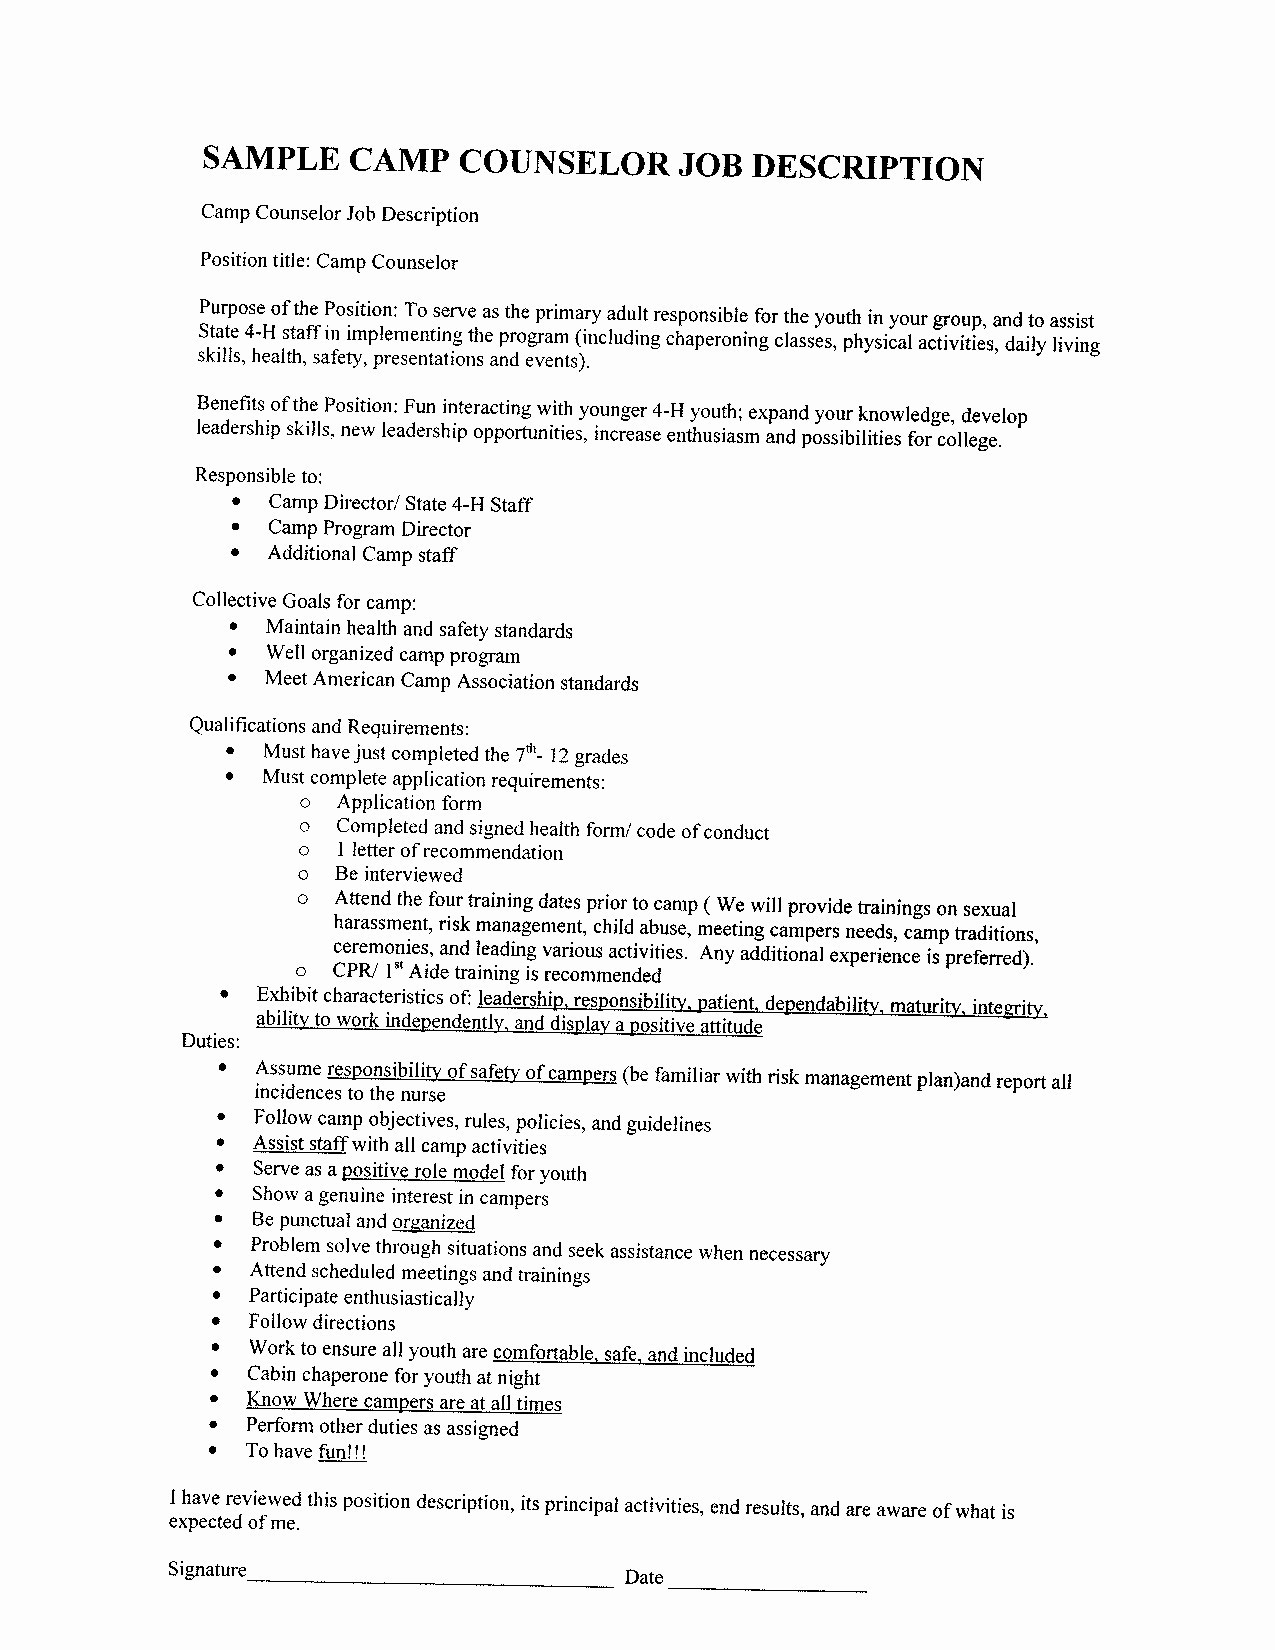 Camp Counselor Job Description for Resume - 23 Camp Counselor Resume